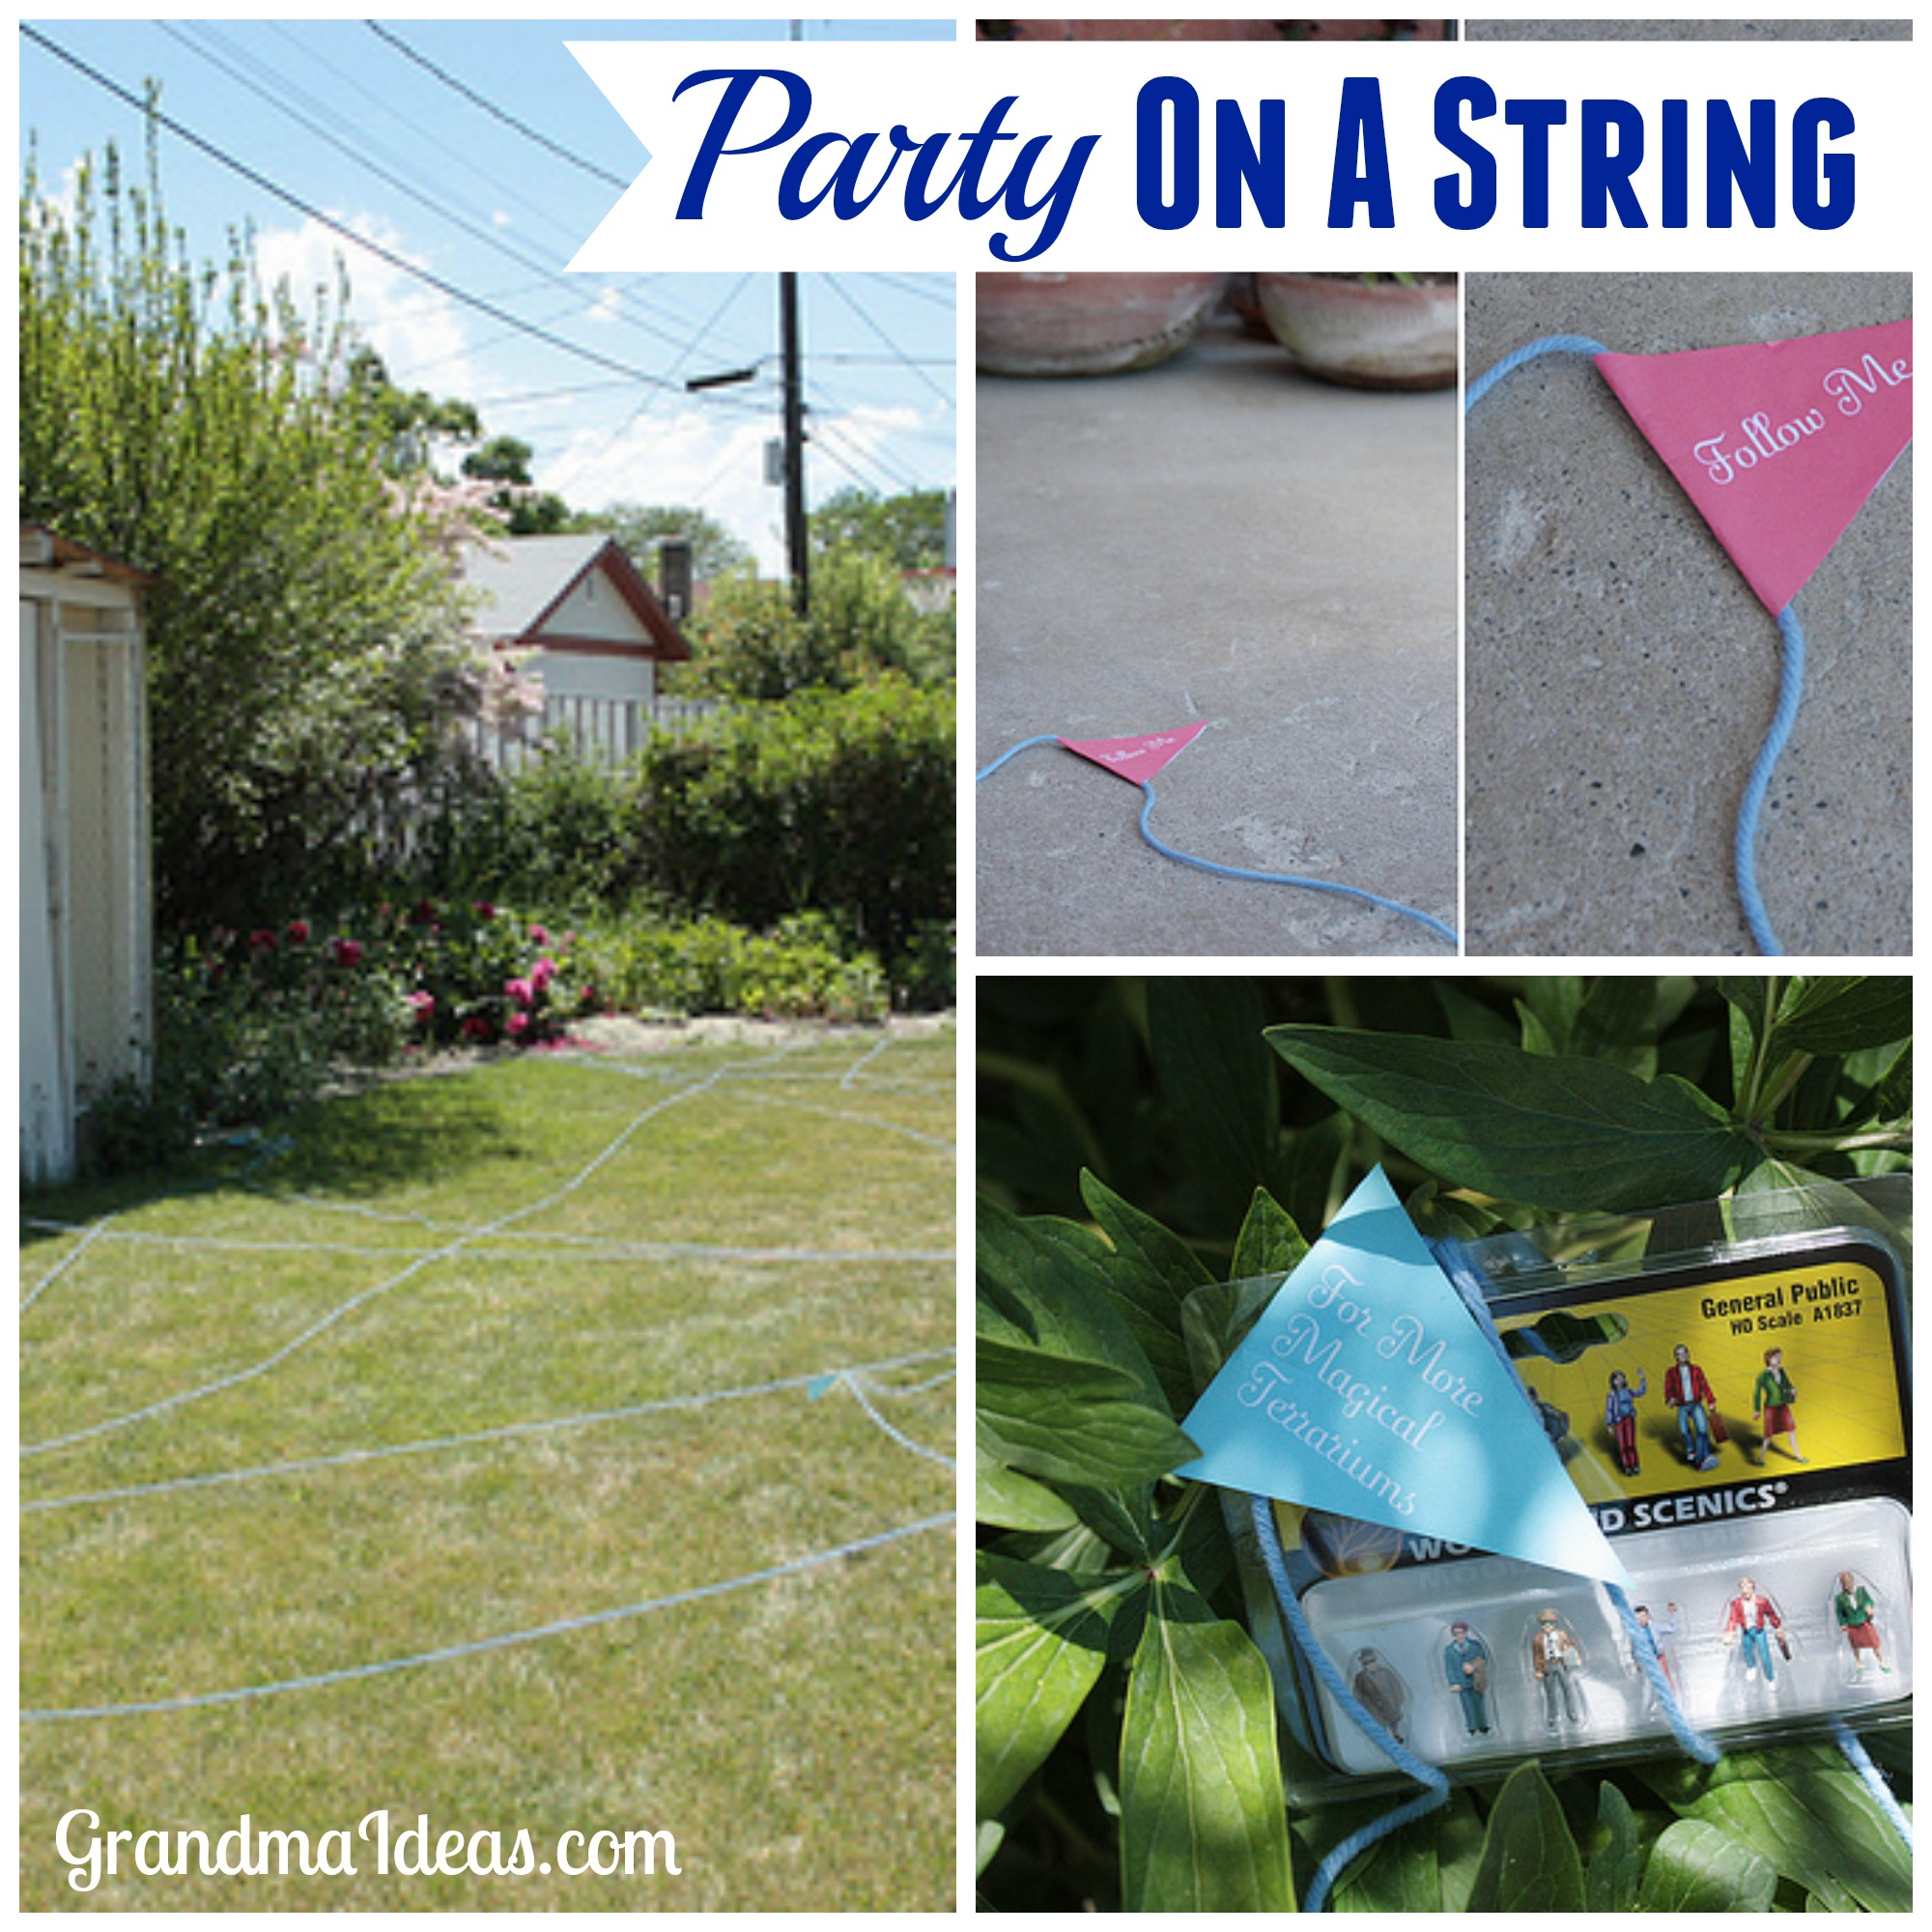 Party on a string is a fun activity -- especially for tween and teenaged kids. GrandmaIdes.com